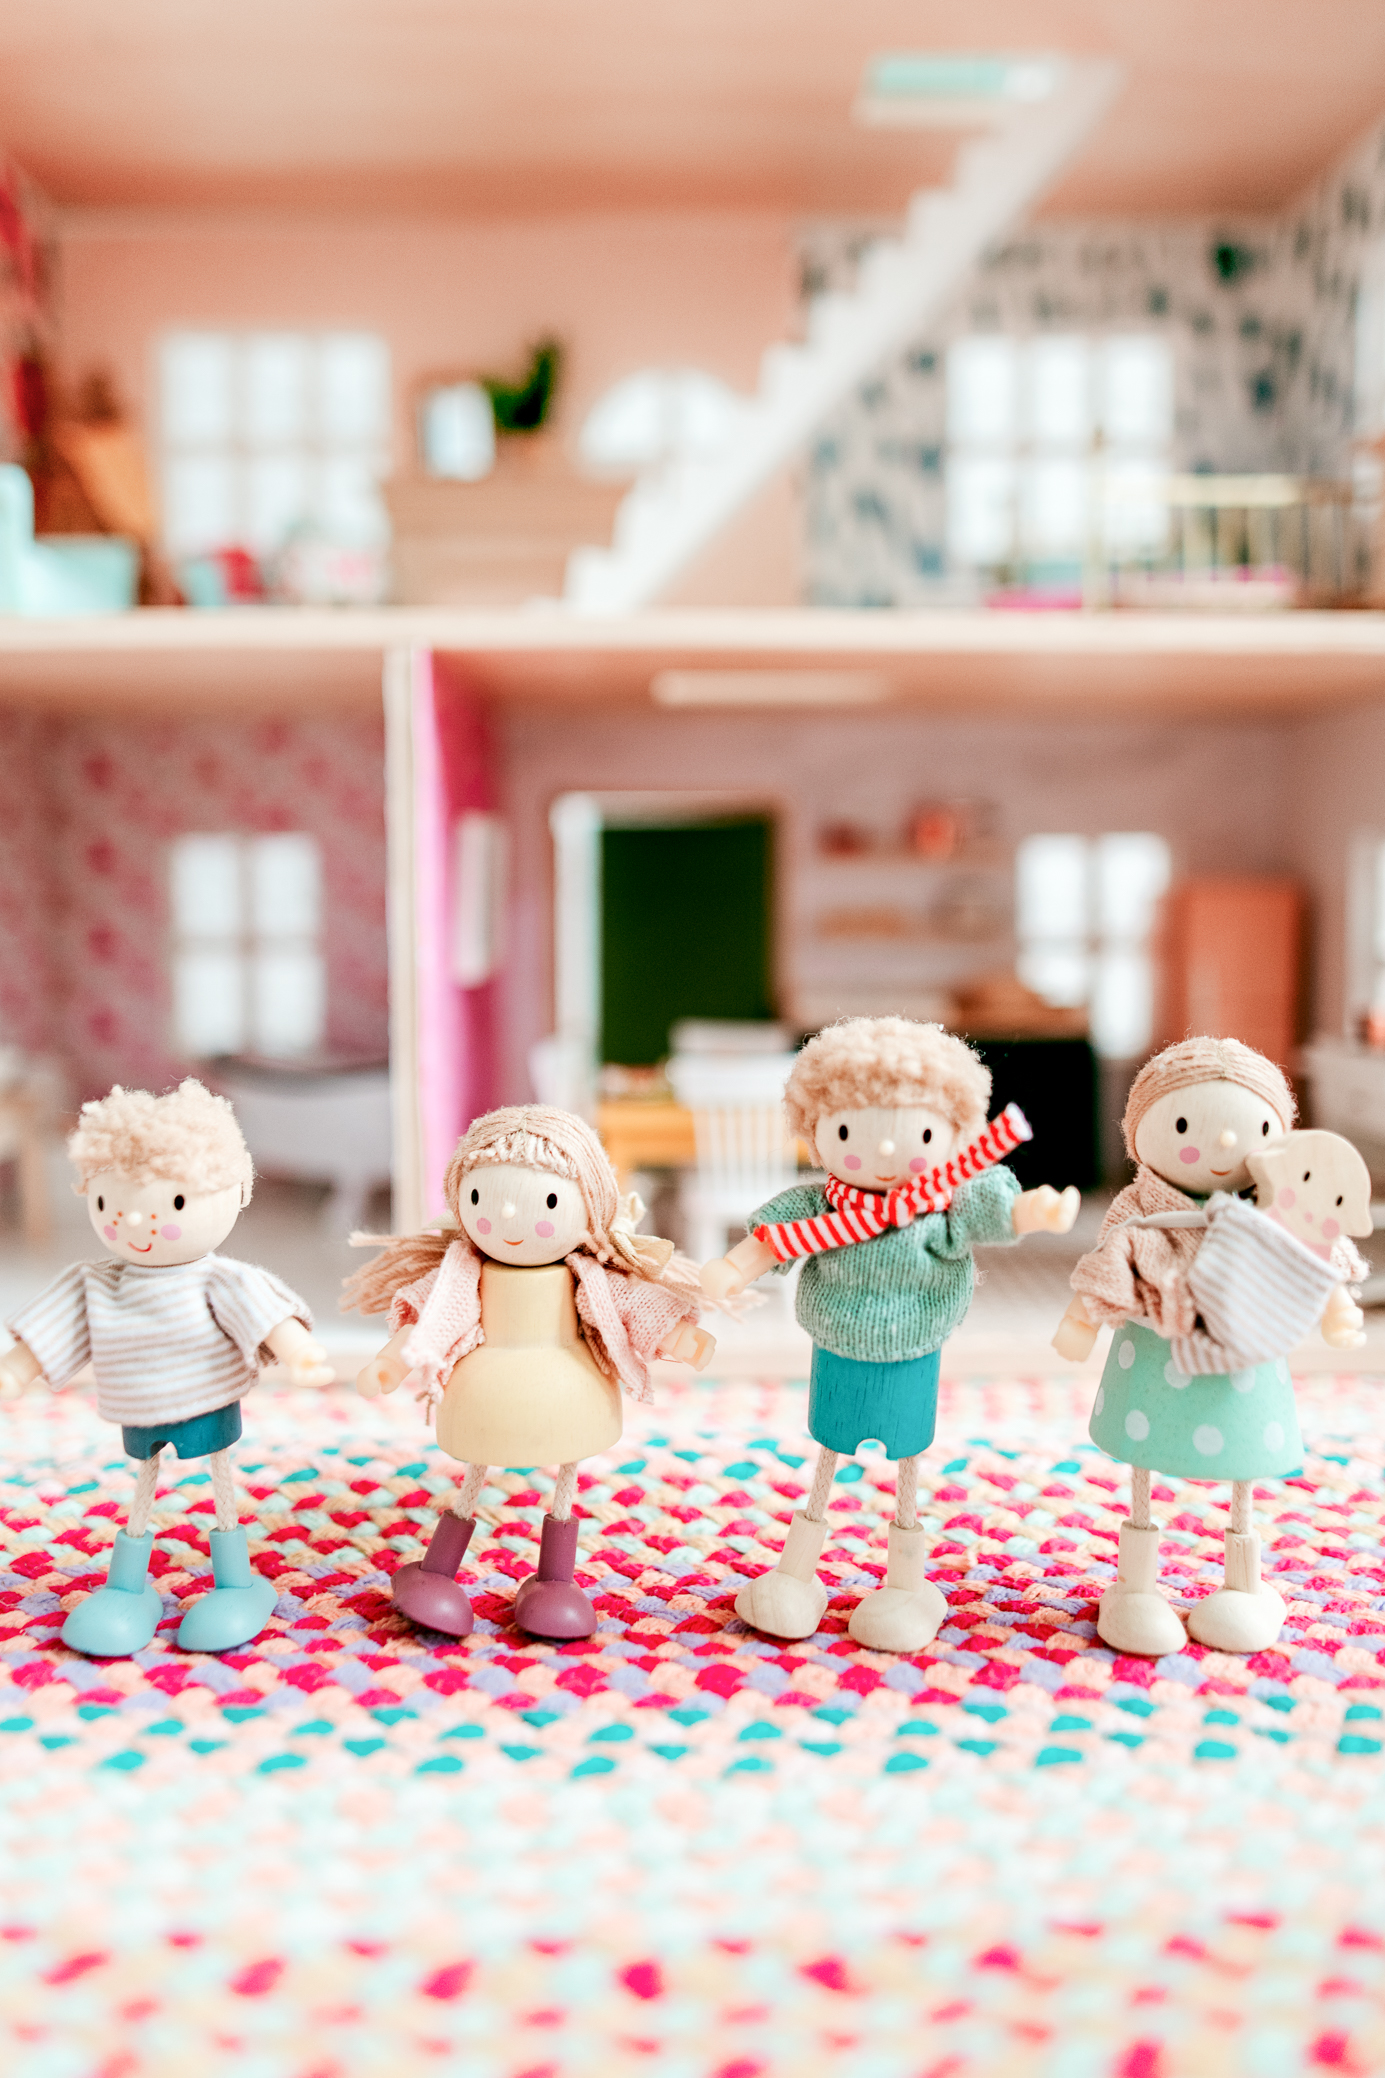 Such a cute dollhouse family! Check out this post for more cute and diverse dollhouse family finds!